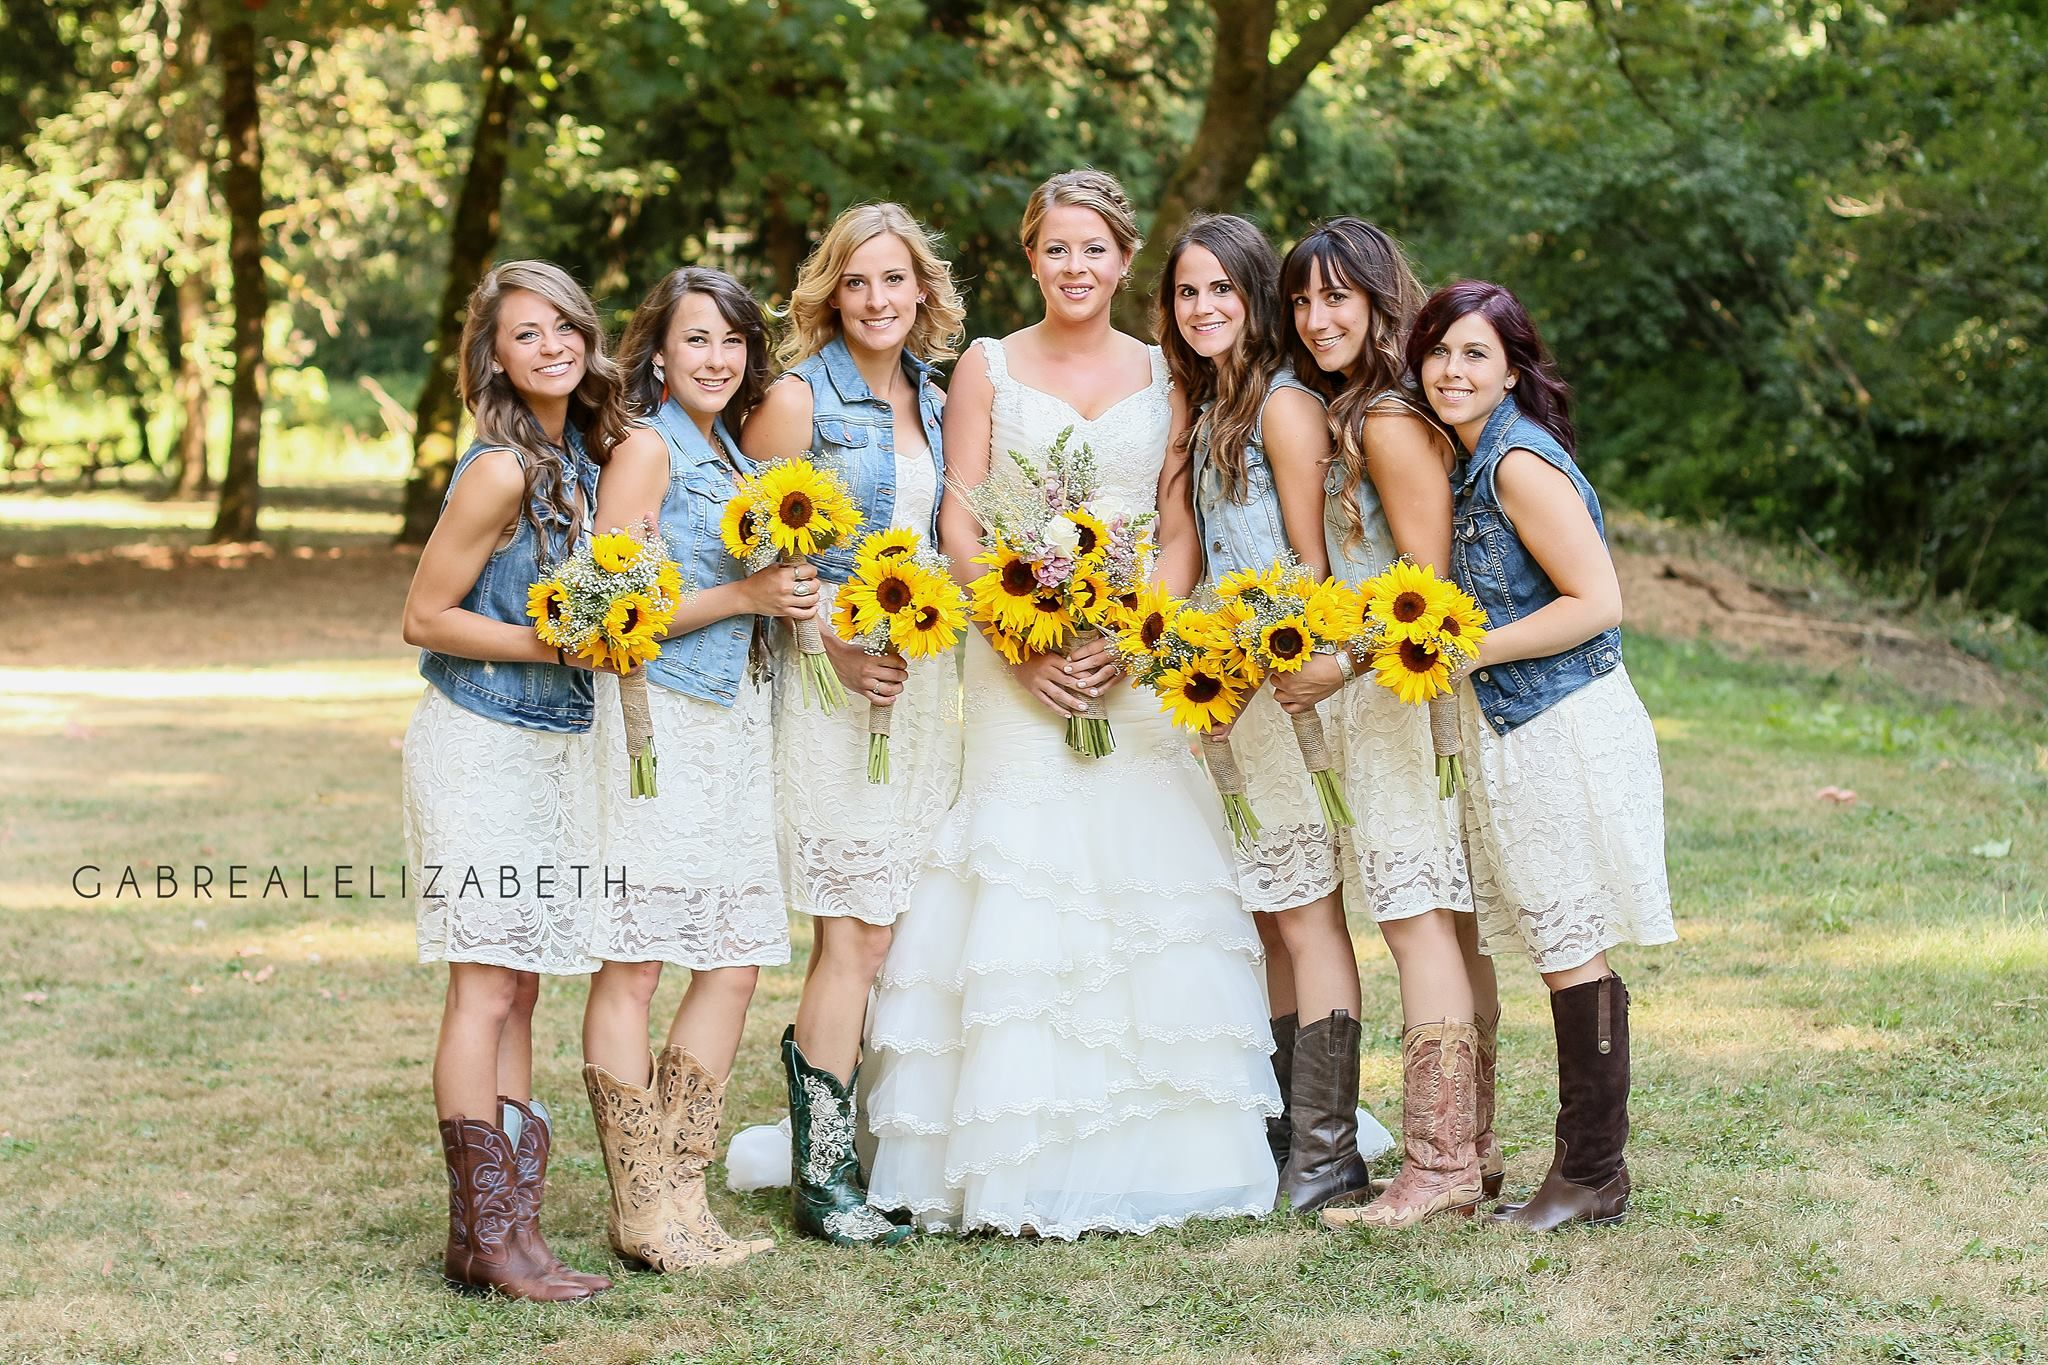 Country Wedding Lace Bridesmaids Dresses With Denim Vests Countrywedding Cou Country Bridesmaid Dresses Country Wedding Dresses Bridesmaid Country Bridesmaid